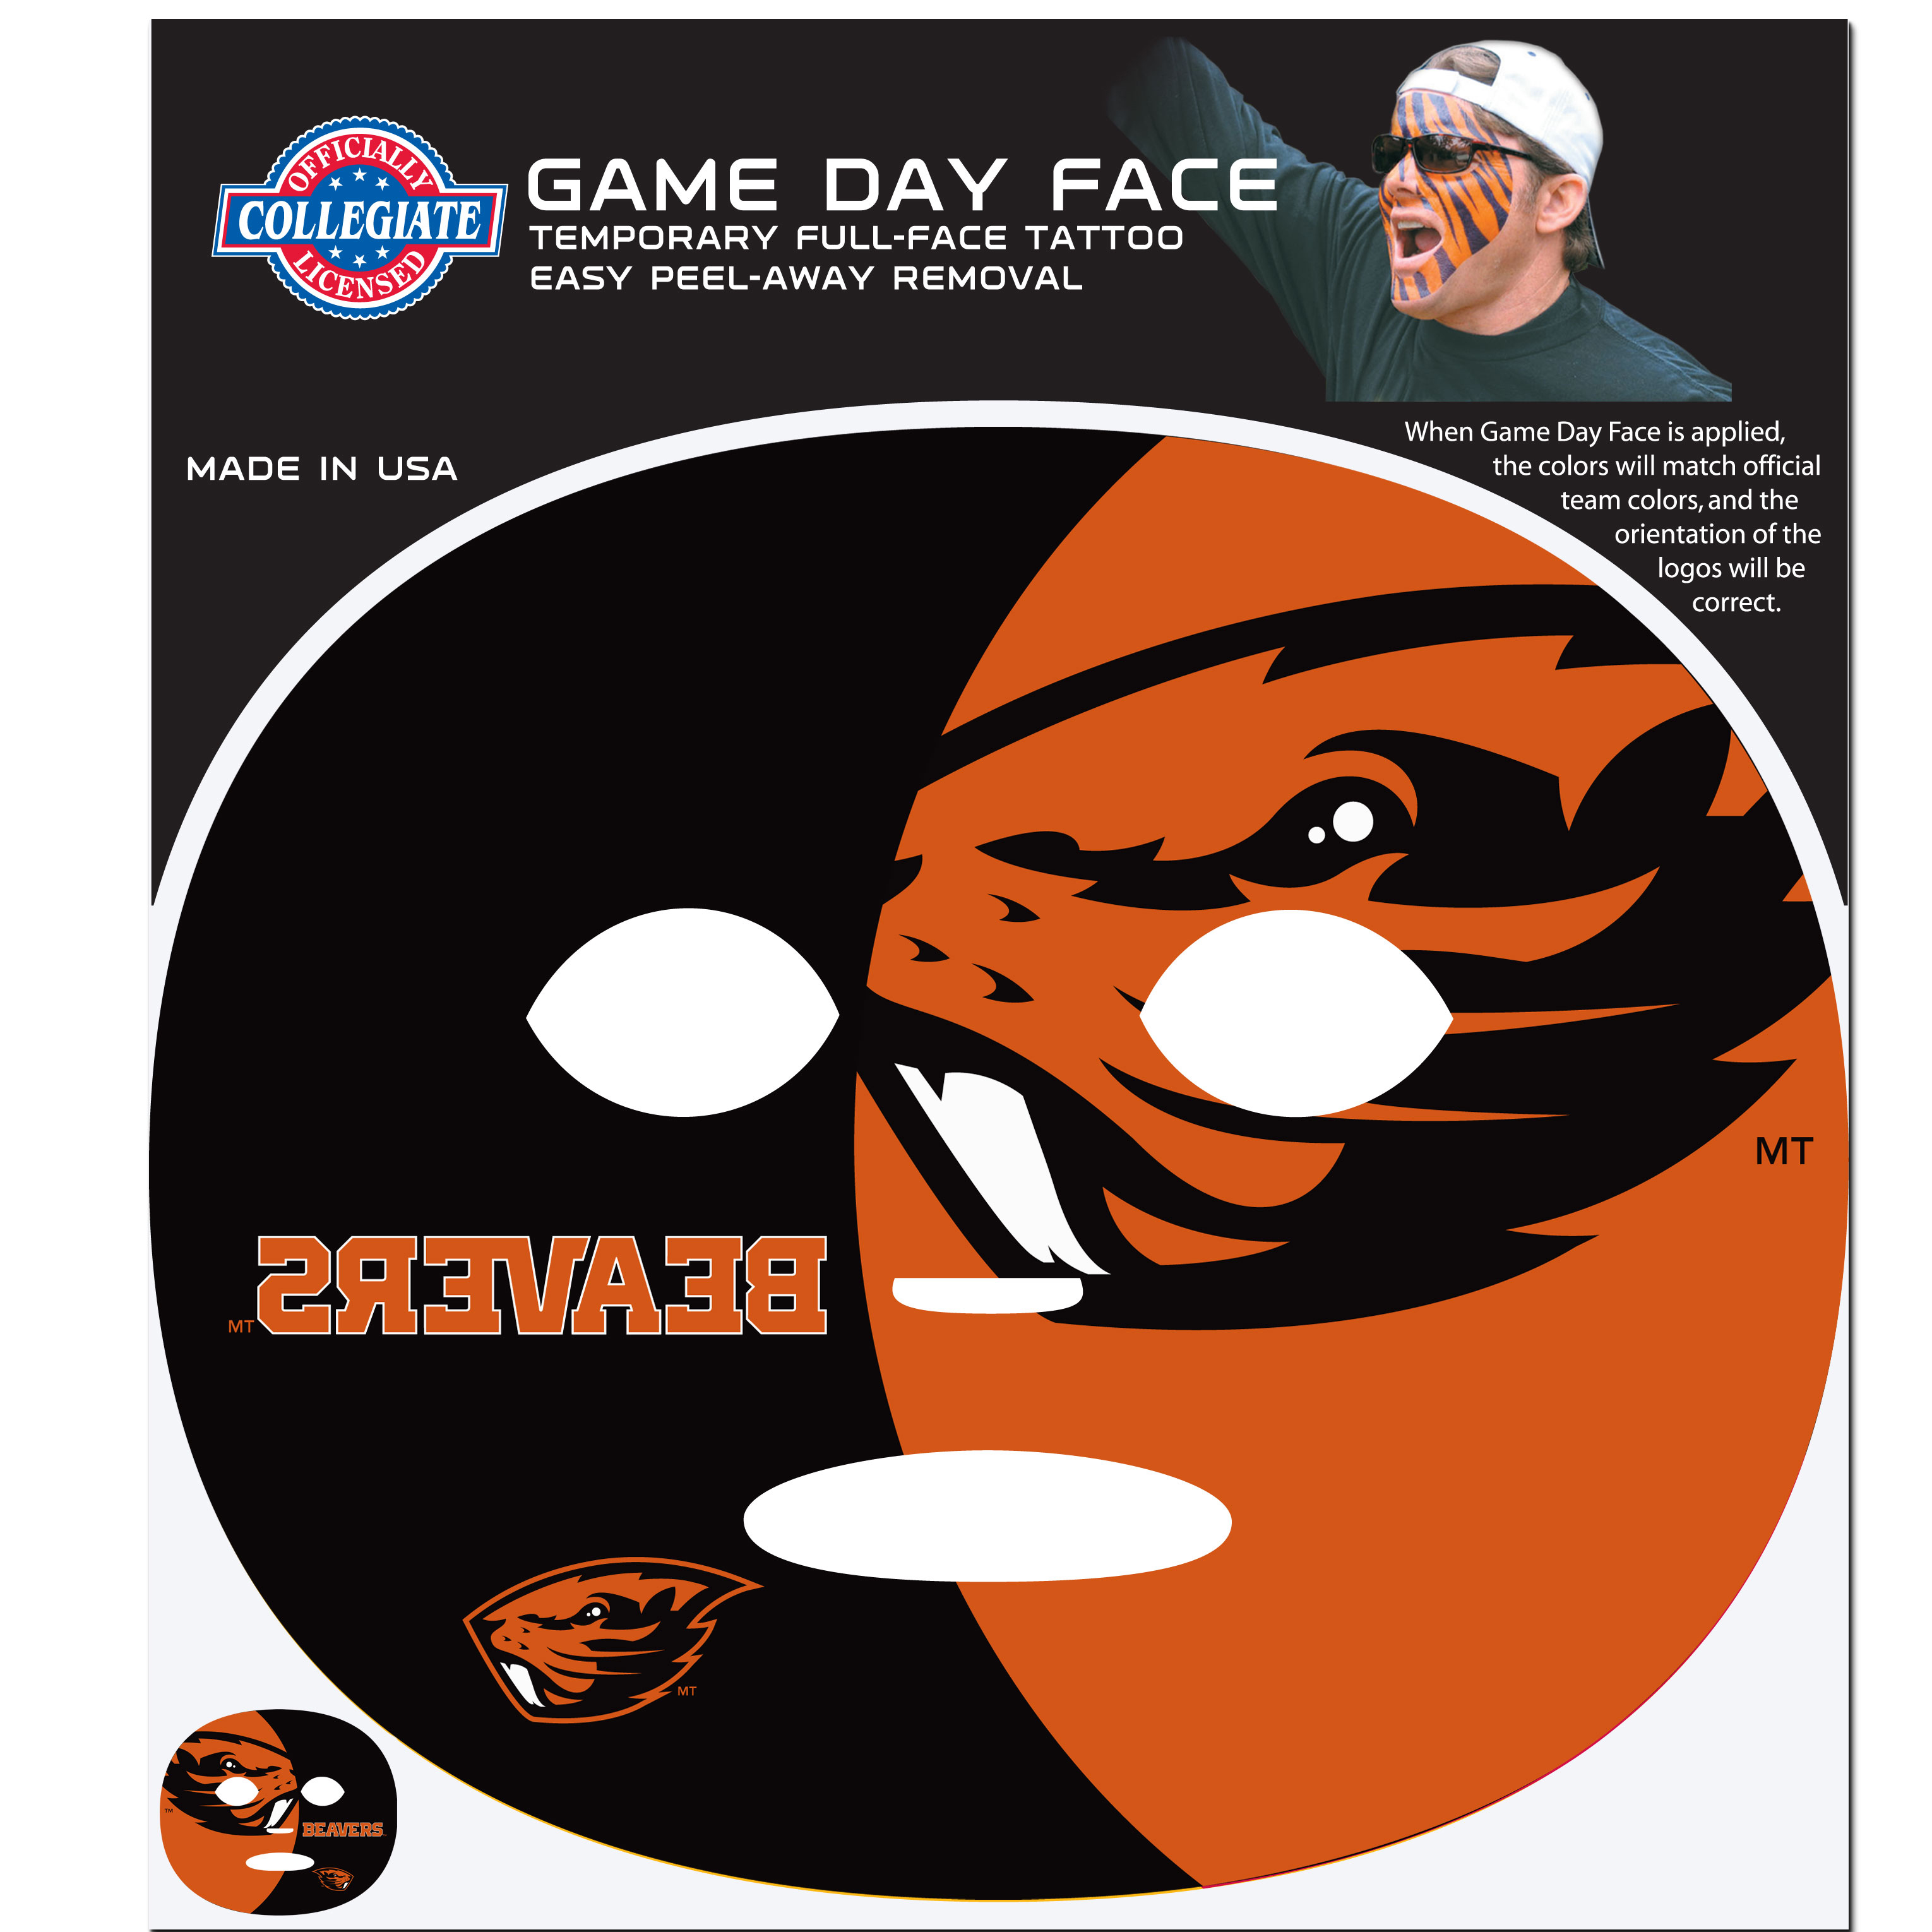 Oregon St. Beavers Set of 8 Game Day Faces - No better way to show your team pride than by painting your face. Siskiyou's Game Day Face Temporary Tattoo isn't your typical face paint. It is a water based application that doesn't smudge, smear or sweat off while you're wearing it and easily peels off after you're done celebrating your team's big Win! The temporary tattoo is large enough to trim down to fit your face. Our Game Day Face Temporary Tattoo's are fun for fans of all ages. You may have seen our product before, these are the same Temporary Face Tattoos as pitched on ABC's Shark Tank.